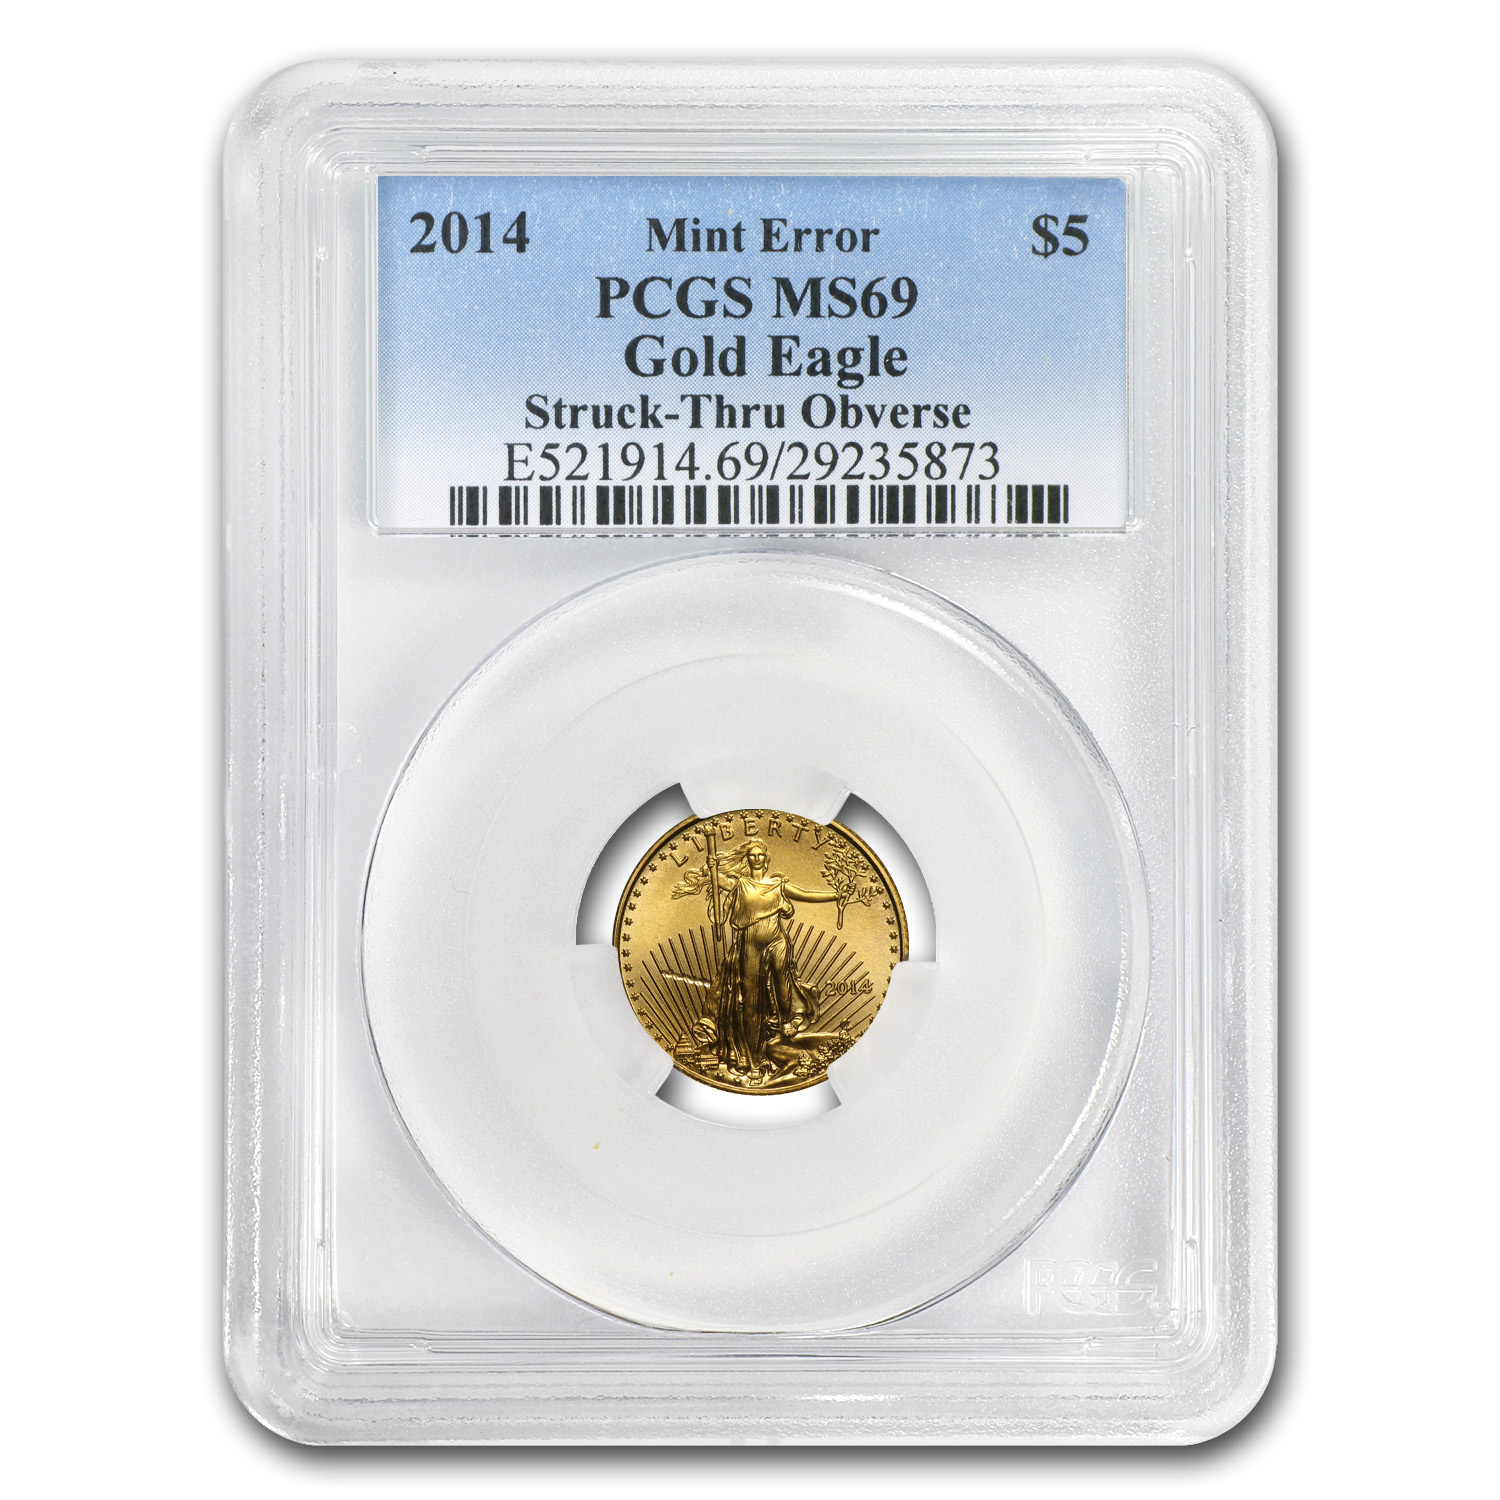 2014 1/10 oz Gold American Eagle MS-69 PCGS Minor Mint Error